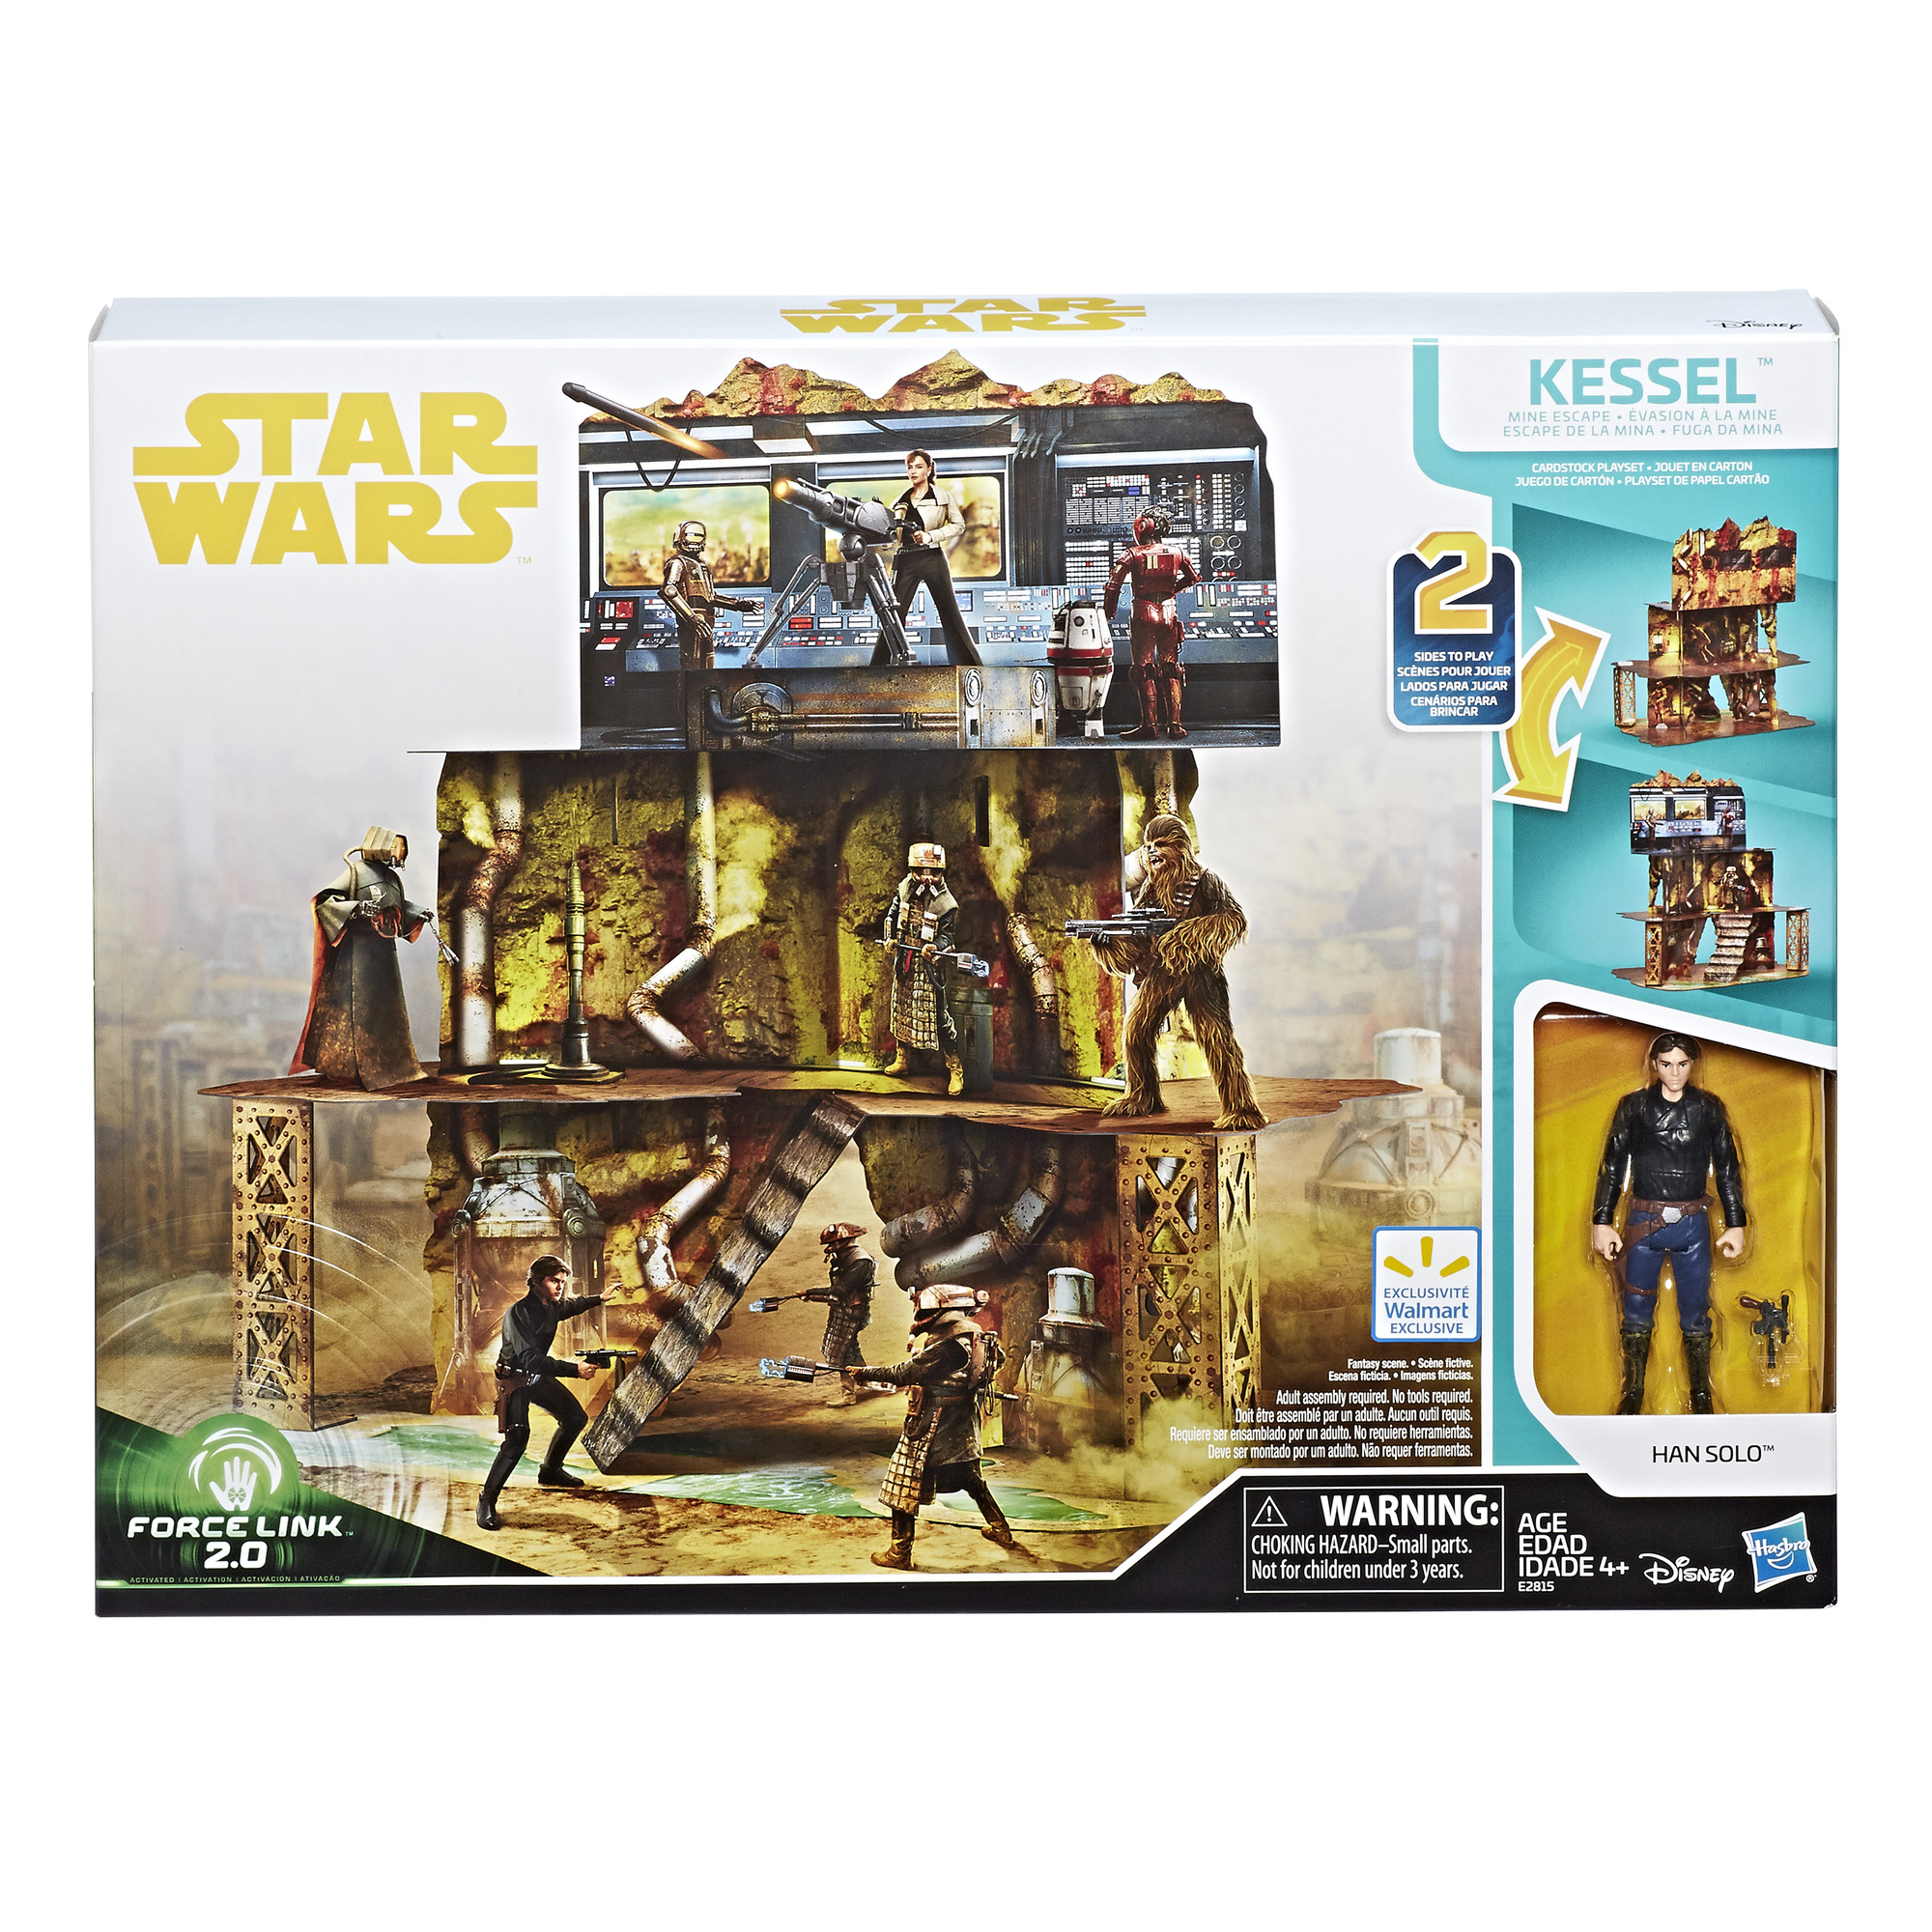 New Kessel Escape Playset Coming From Hasbro Outer Rim News